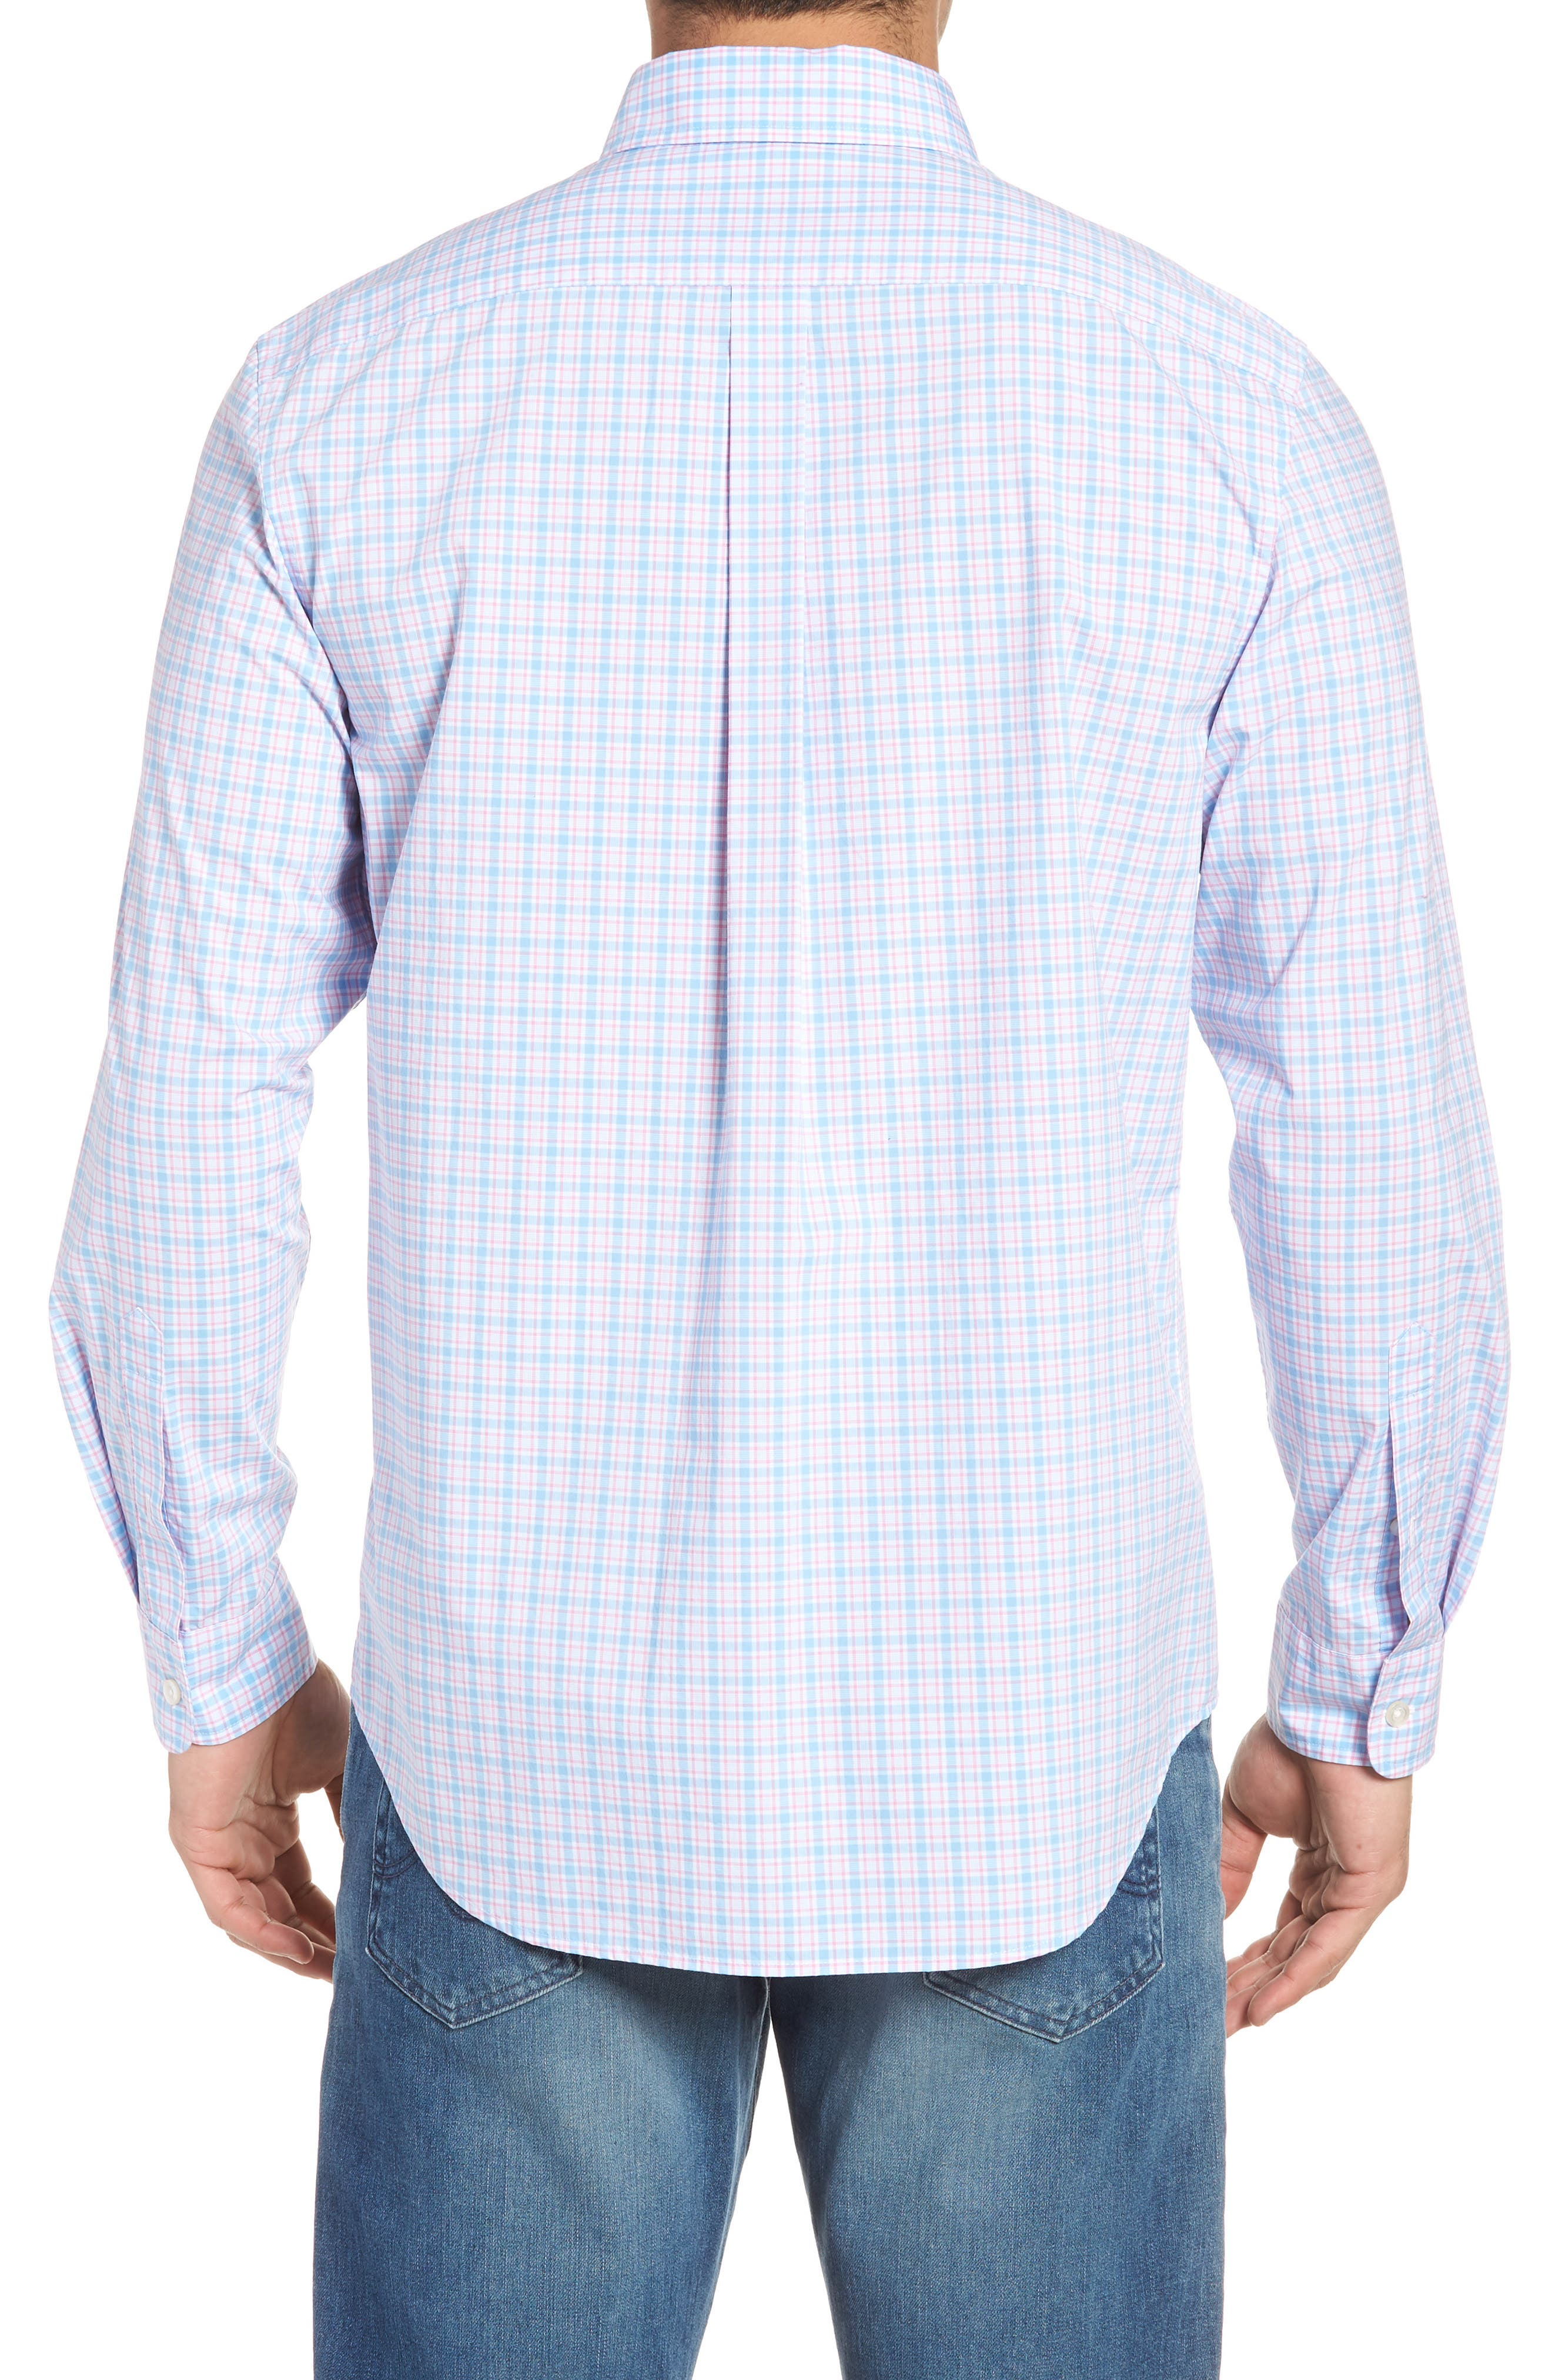 Captain Lyford Classic Fit Stretch Check Sport Shirt,                             Alternate thumbnail 2, color,                             484